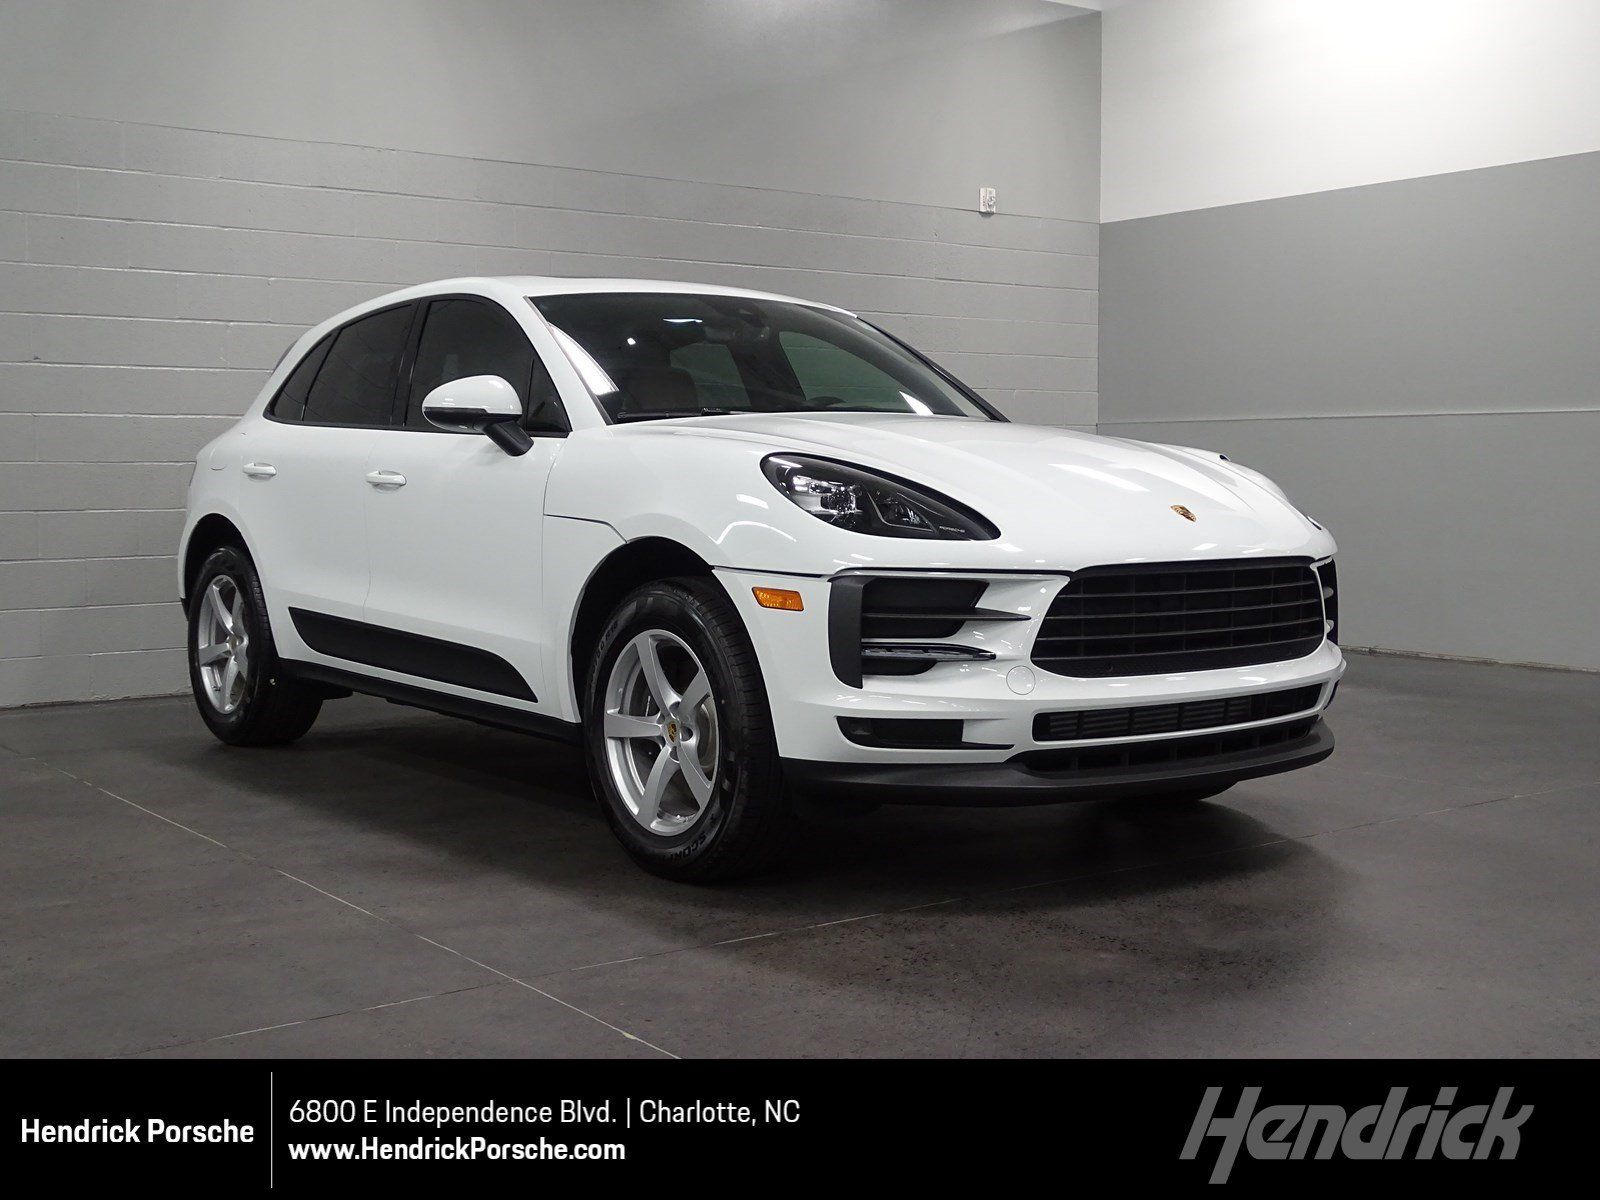 70 New Porsche Cars, SUVs in Stock Porsche, Porsche